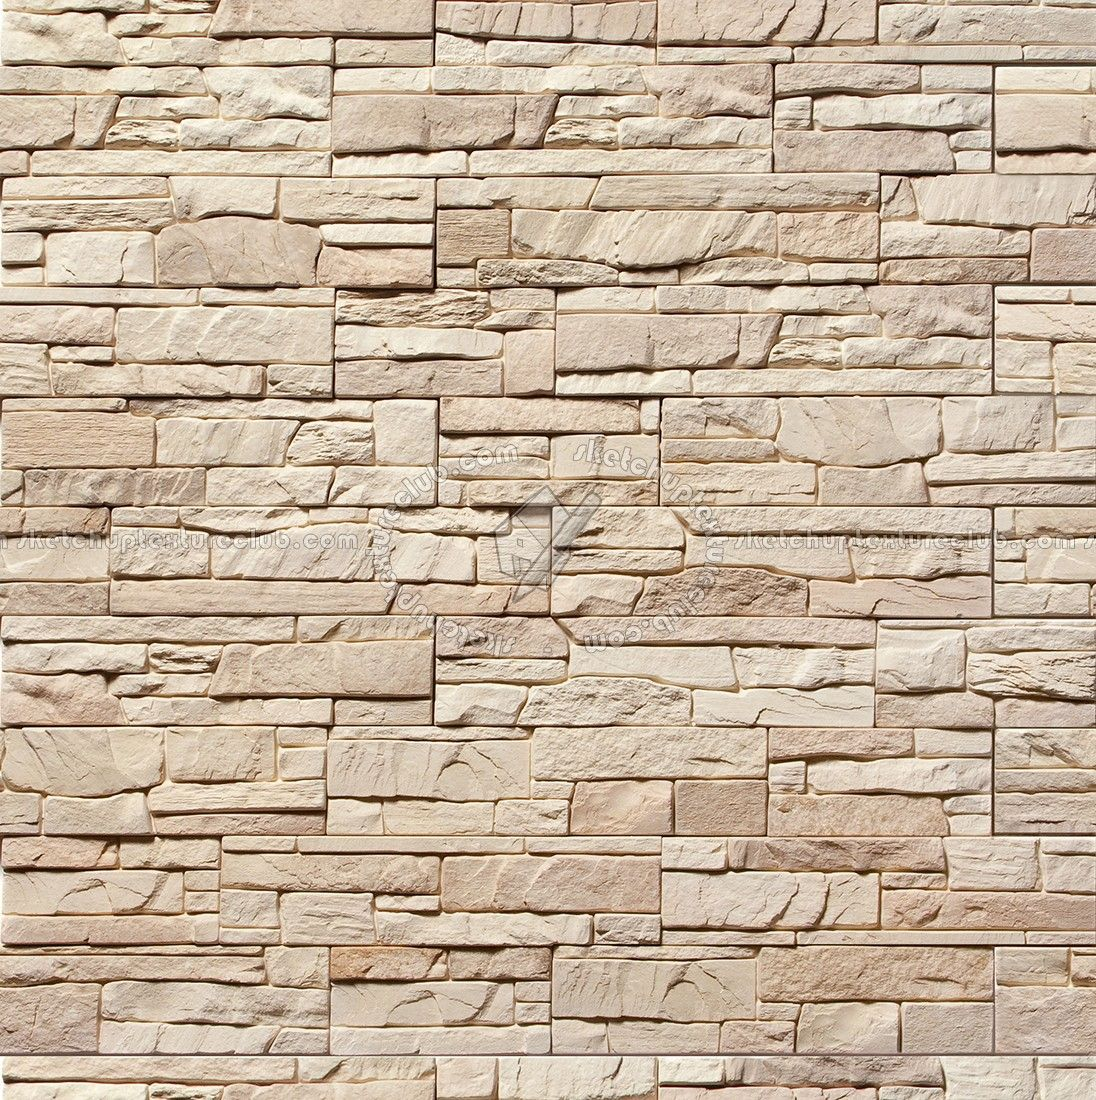 Stacked Slabs Walls Stone Textures Seamless Brick Texture